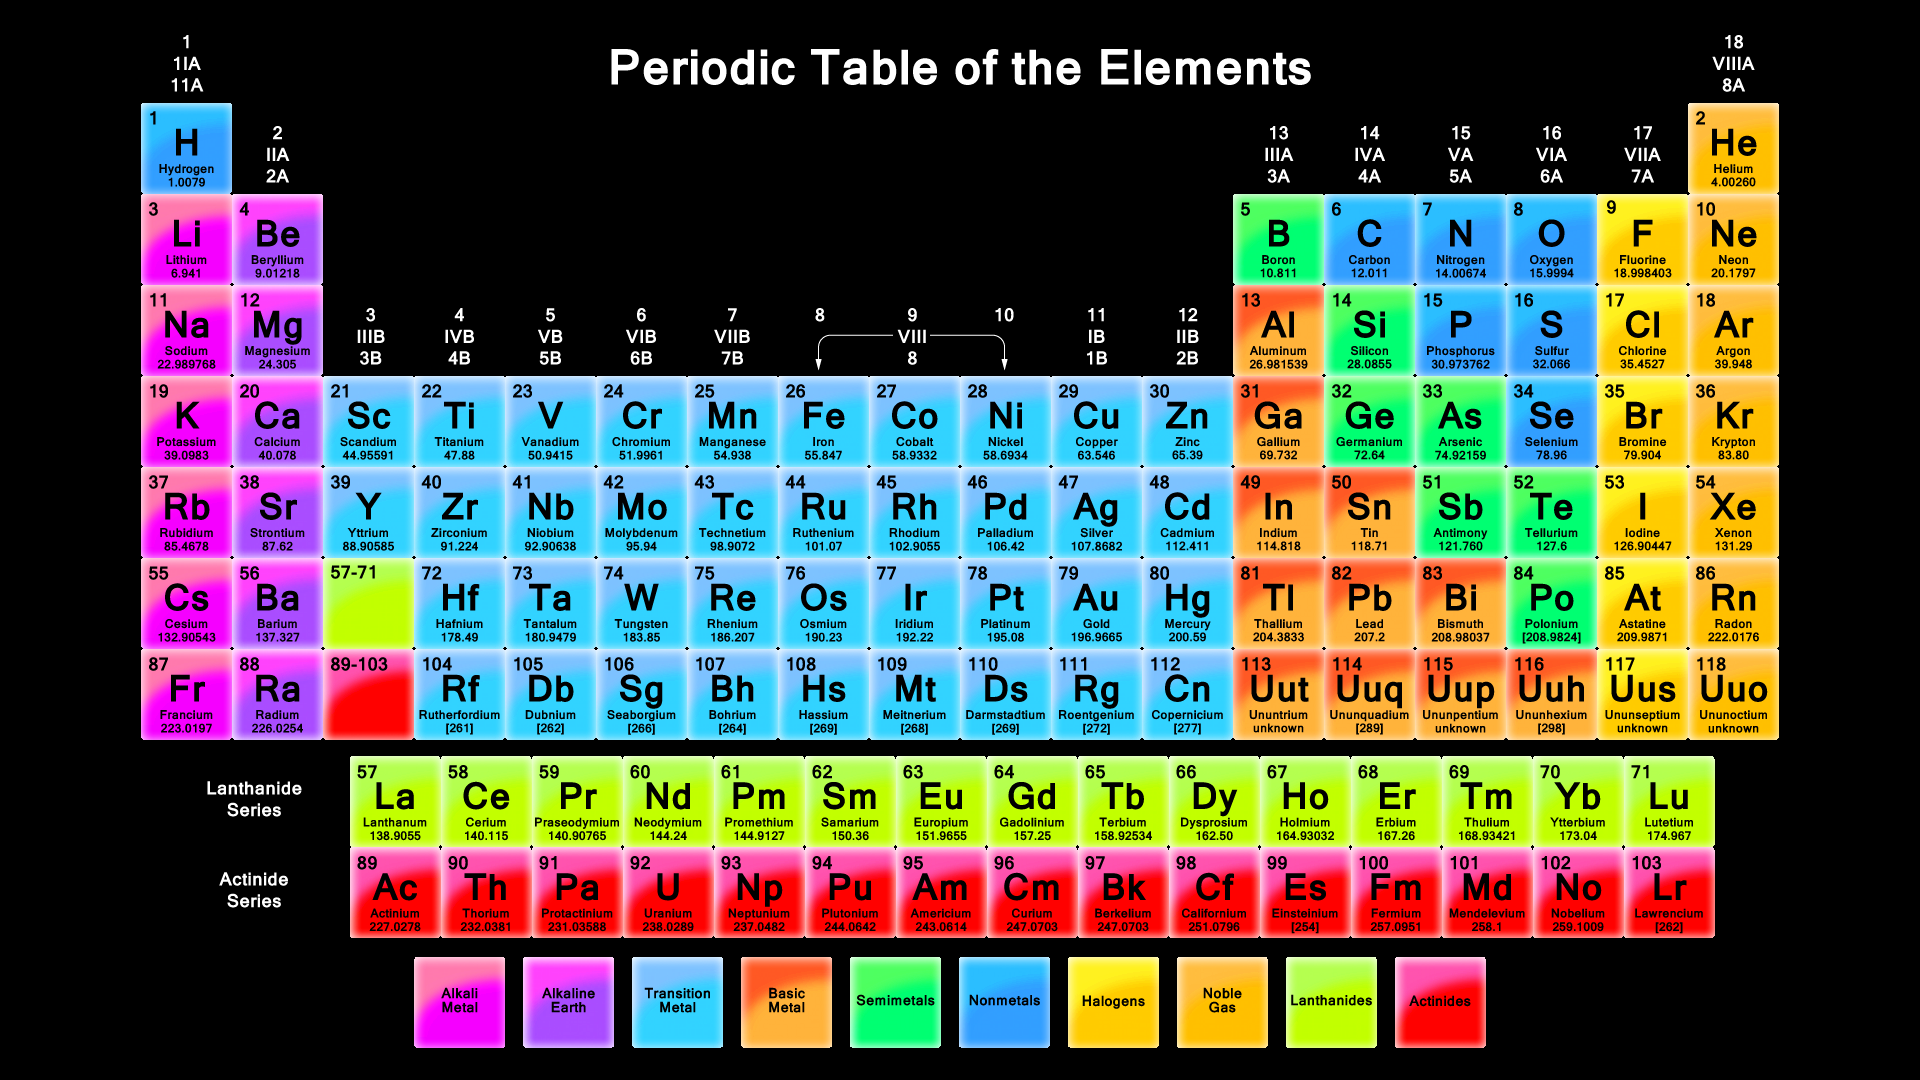 Download elements periodic table chemistry infographics 23668 9 download elements periodic table chemistry infographics 23668 9 hd desktop wallpapers wallpapers87 gamestrikefo Image collections